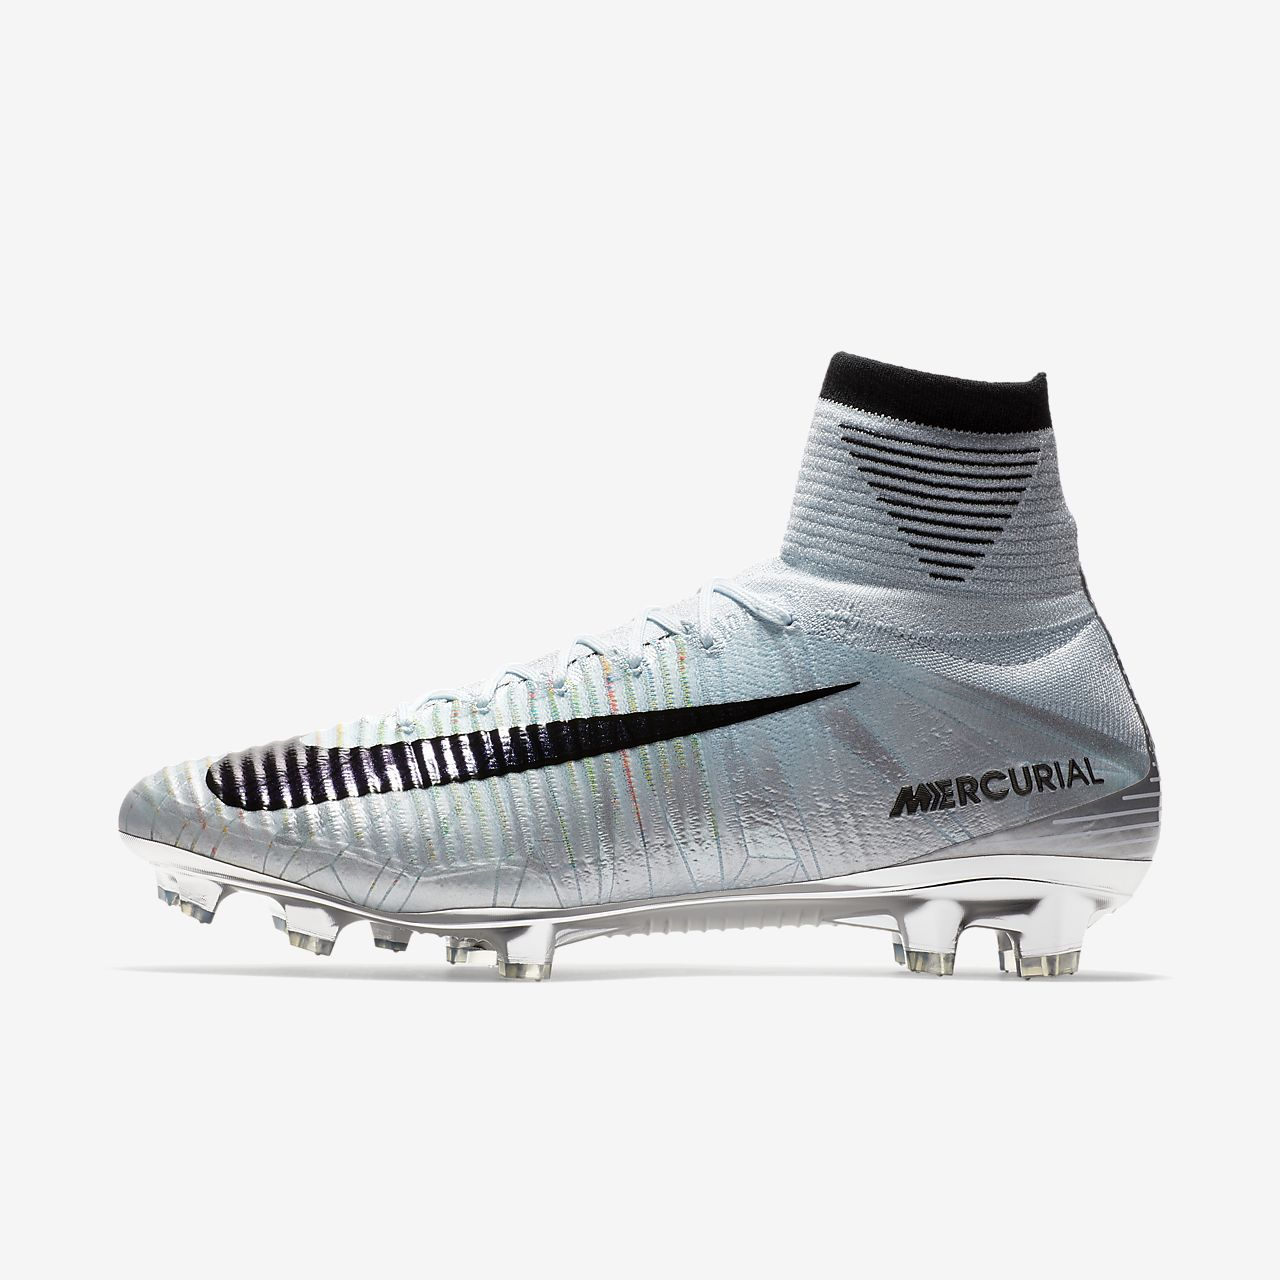 ... Nike Mercurial Superfly V CR7 SE Firm-Ground Football Boot